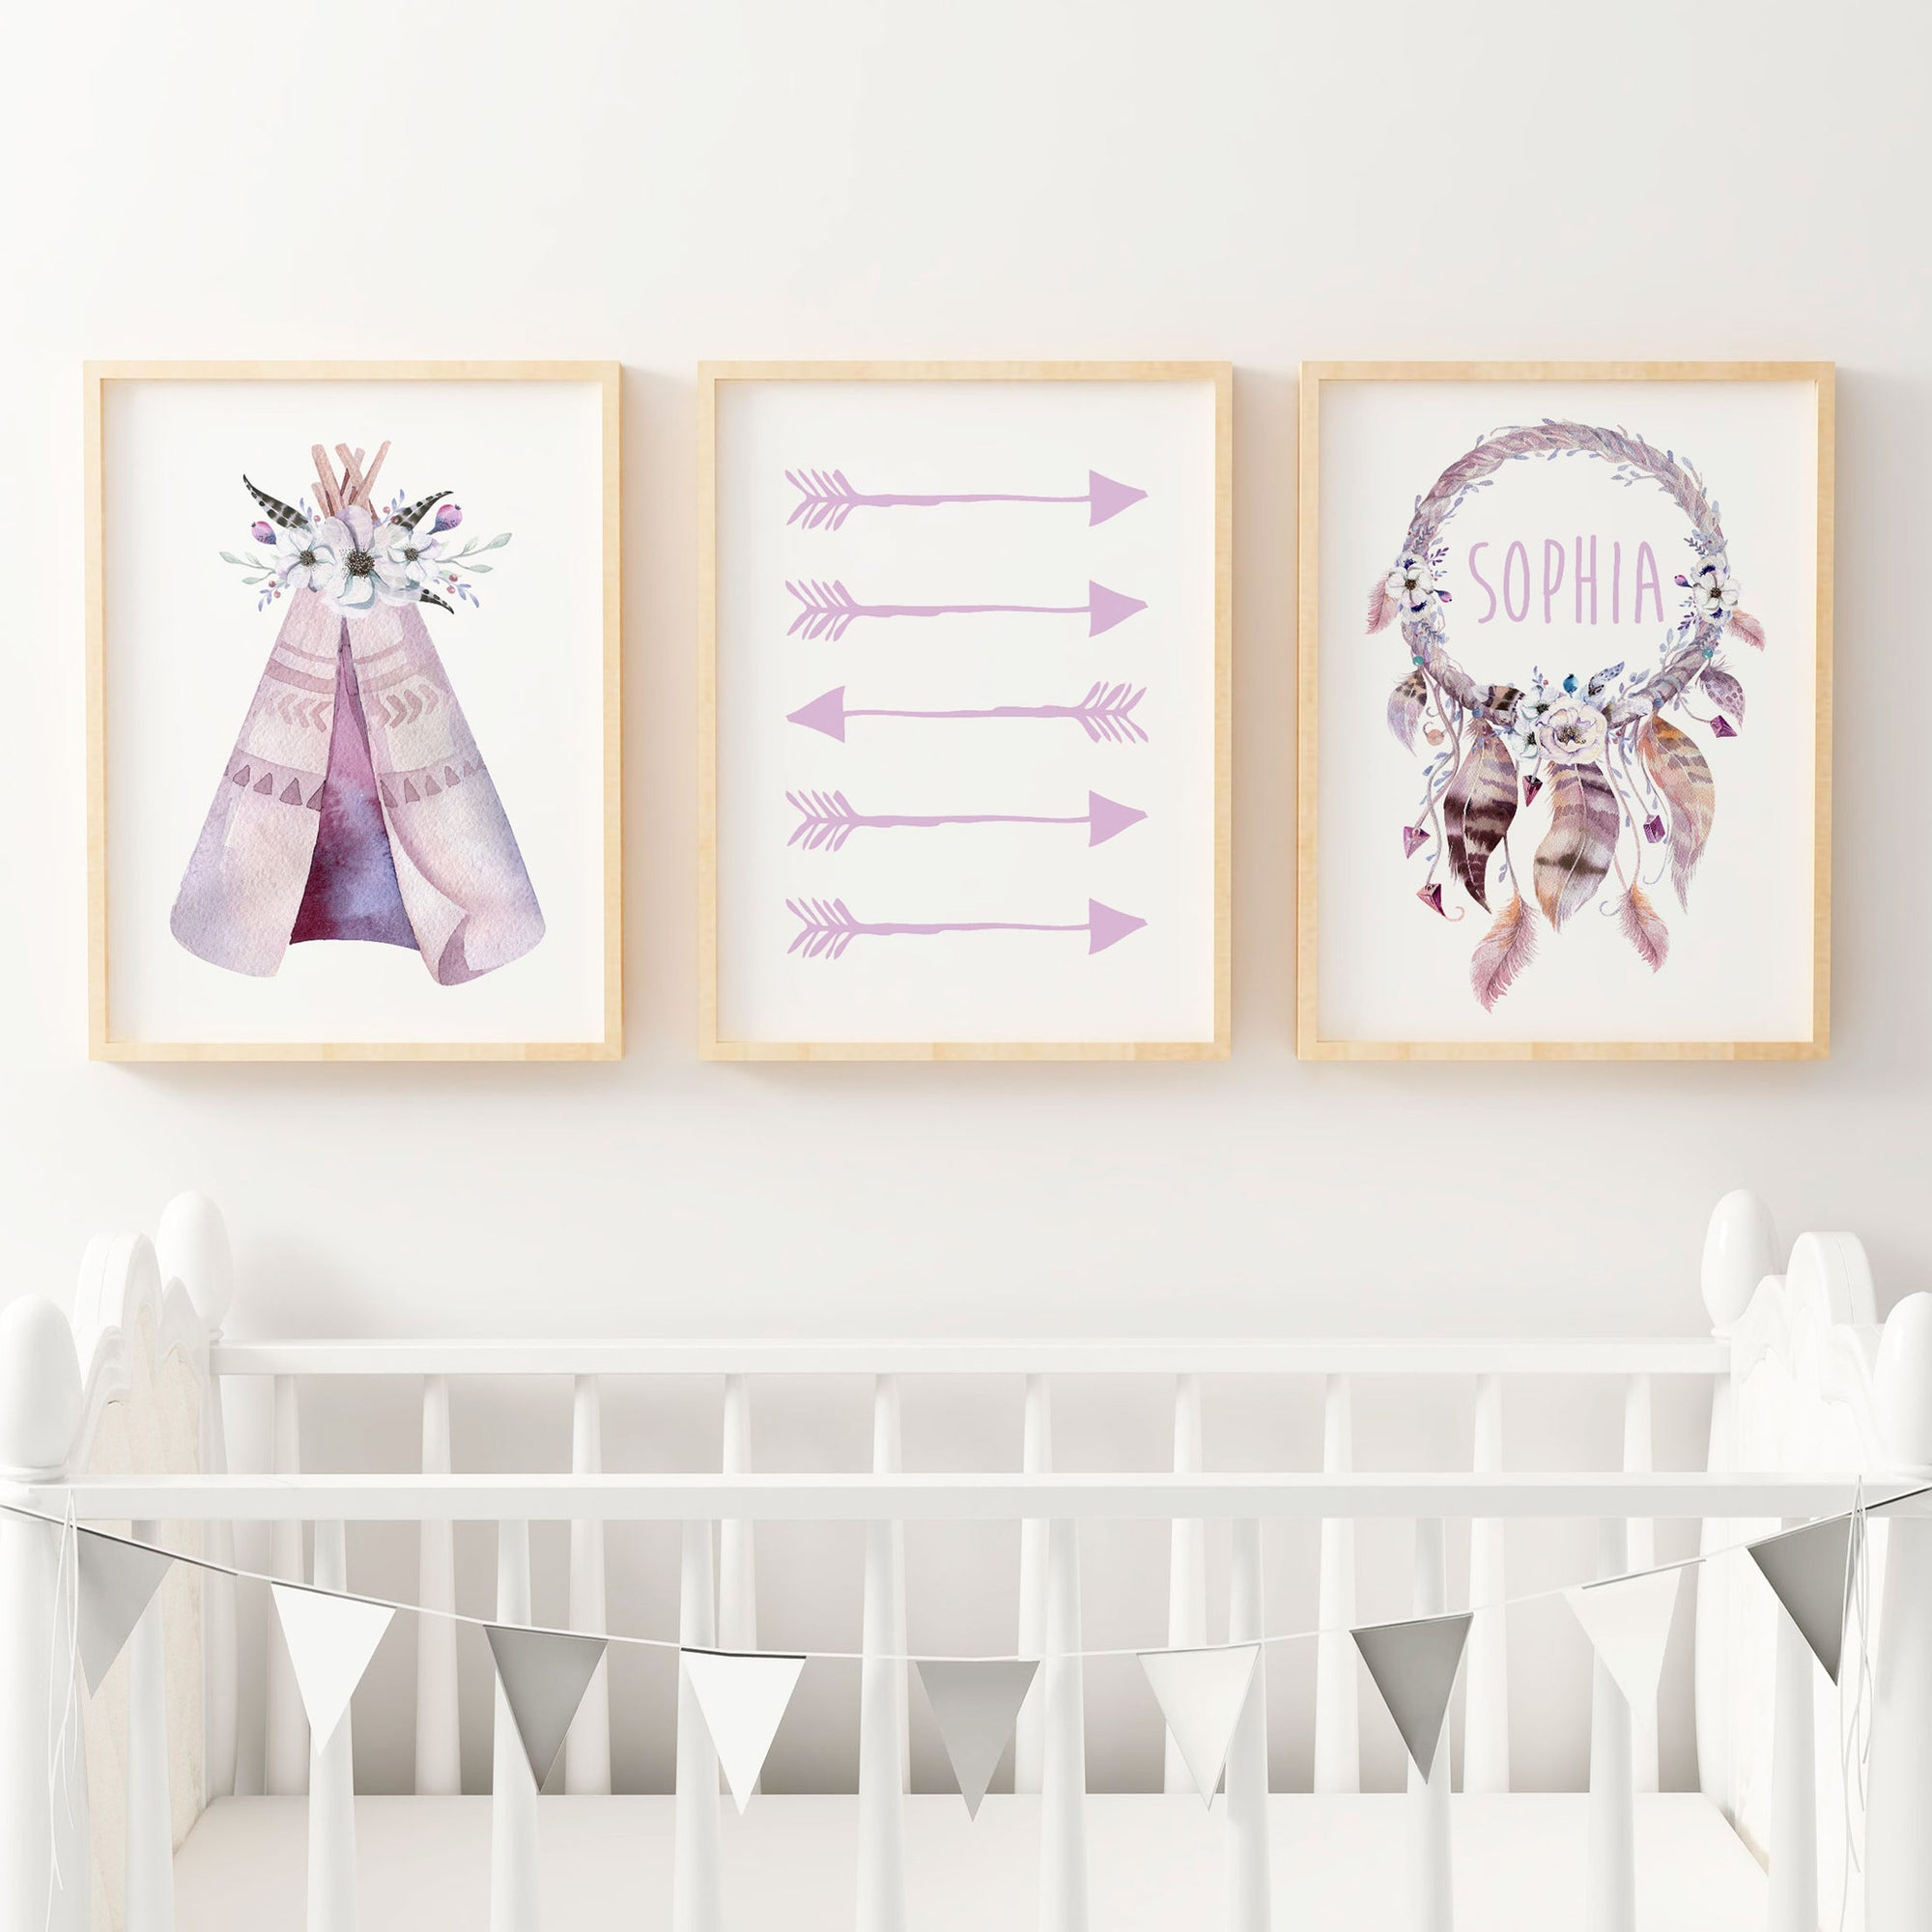 Baby, Girls Boho Tribal Nursery or Bedroom Wall Art Decor Print Set with Personalised Dreamcatcher Name Print